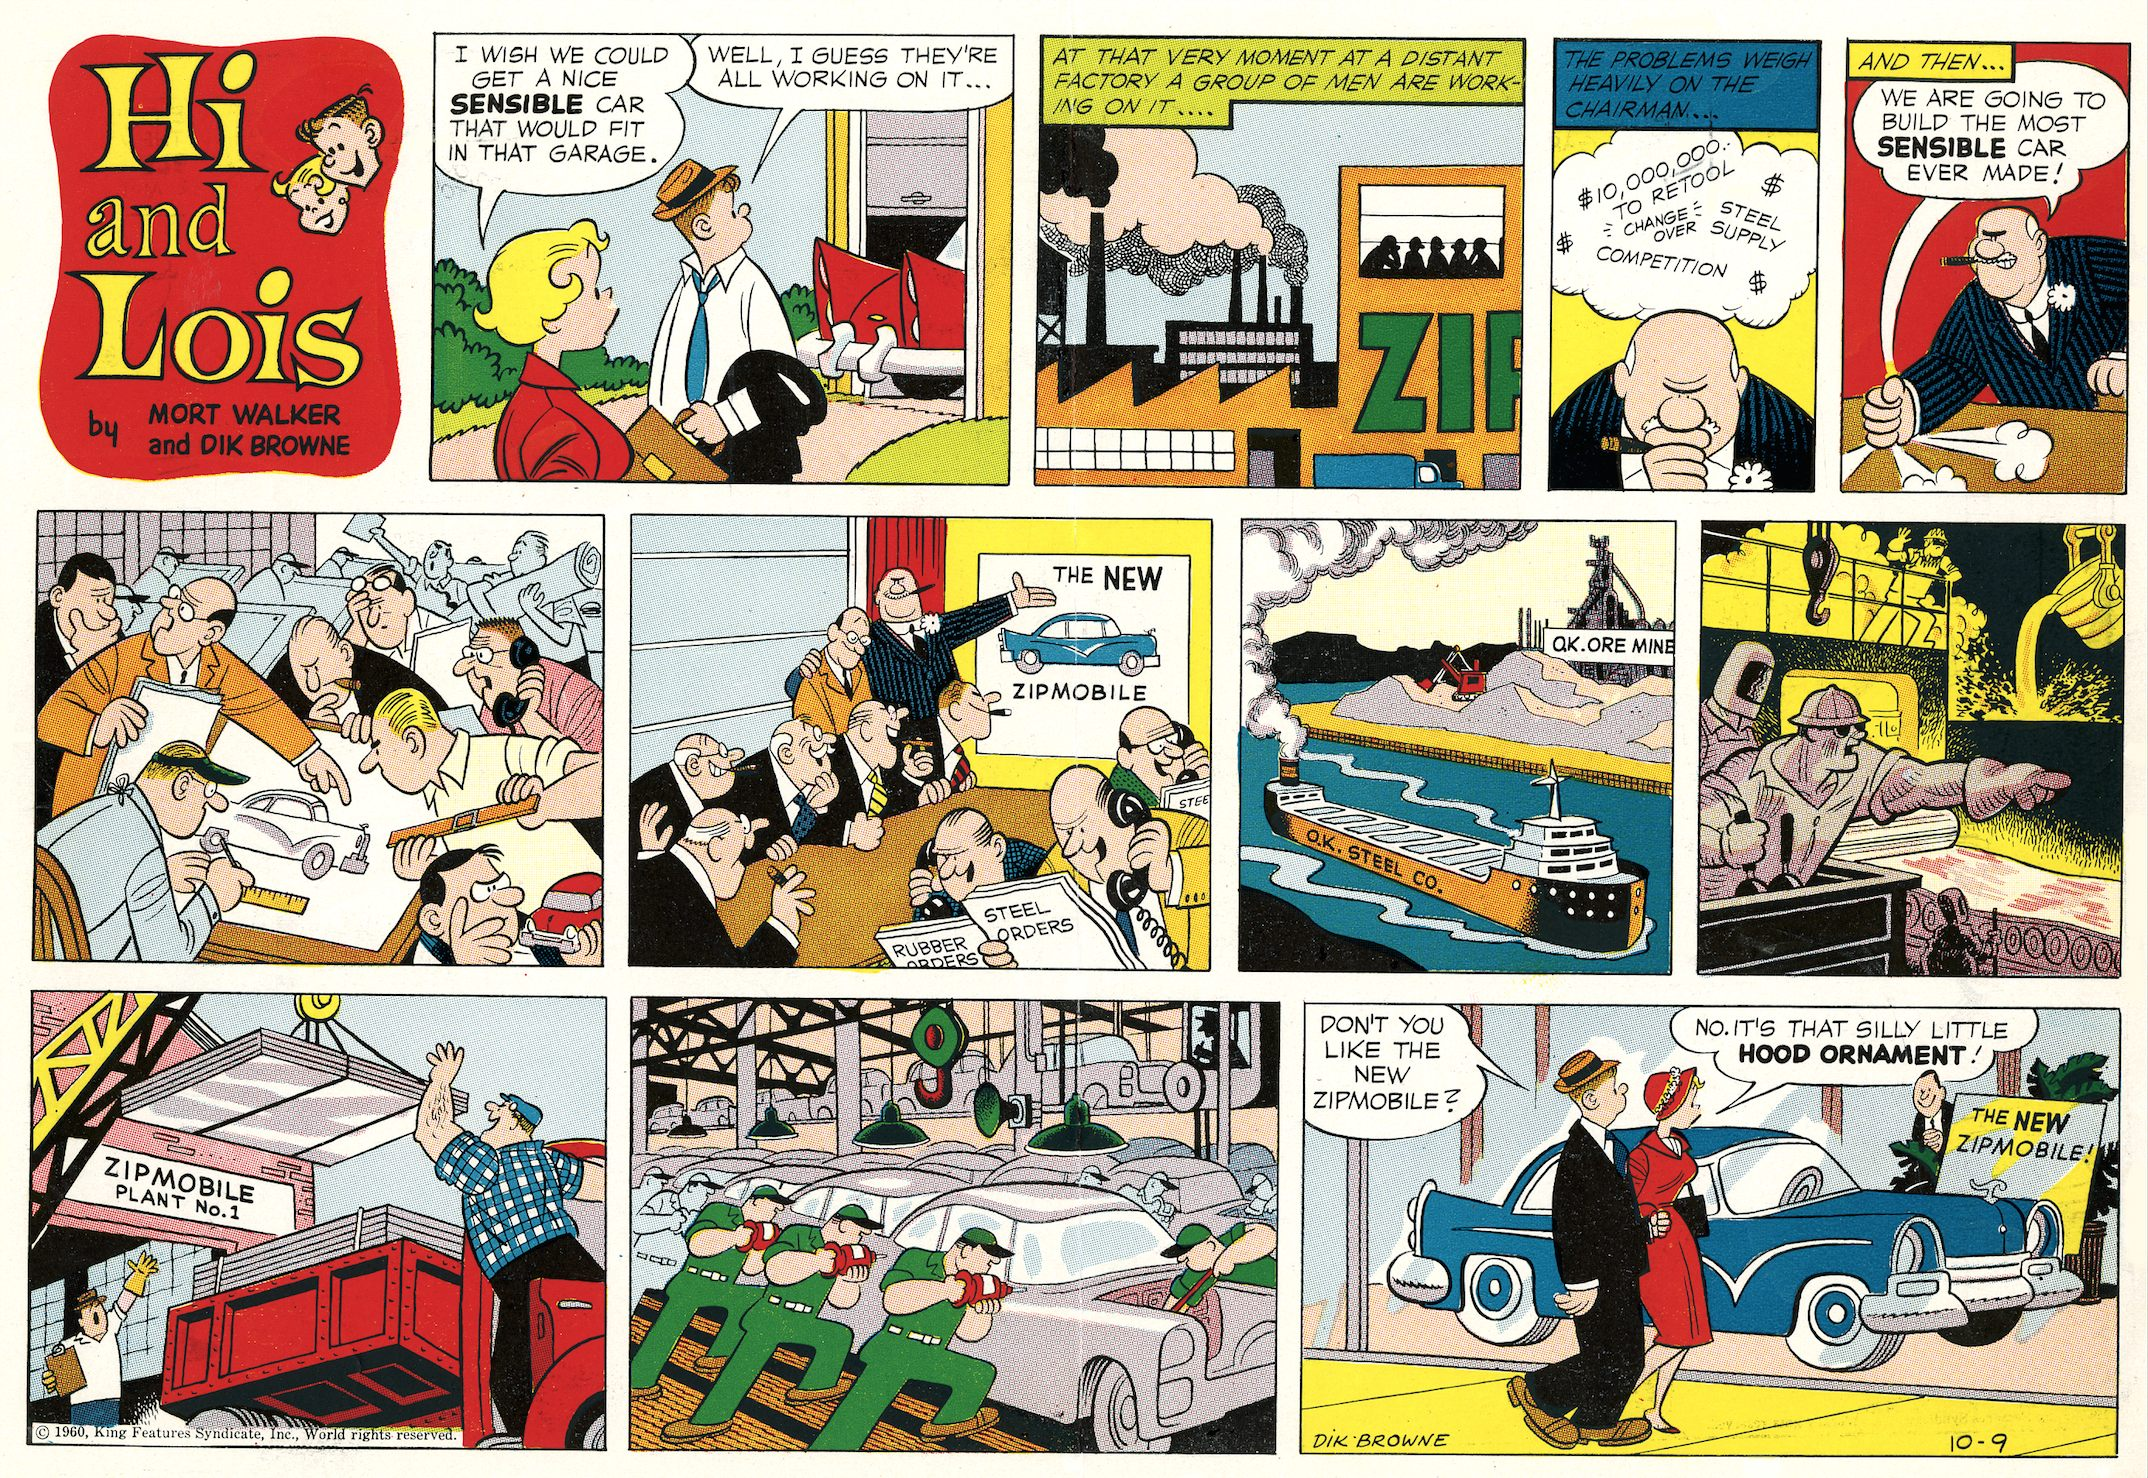 Hi and Lois Sunday page color proof, October 9, 1960.